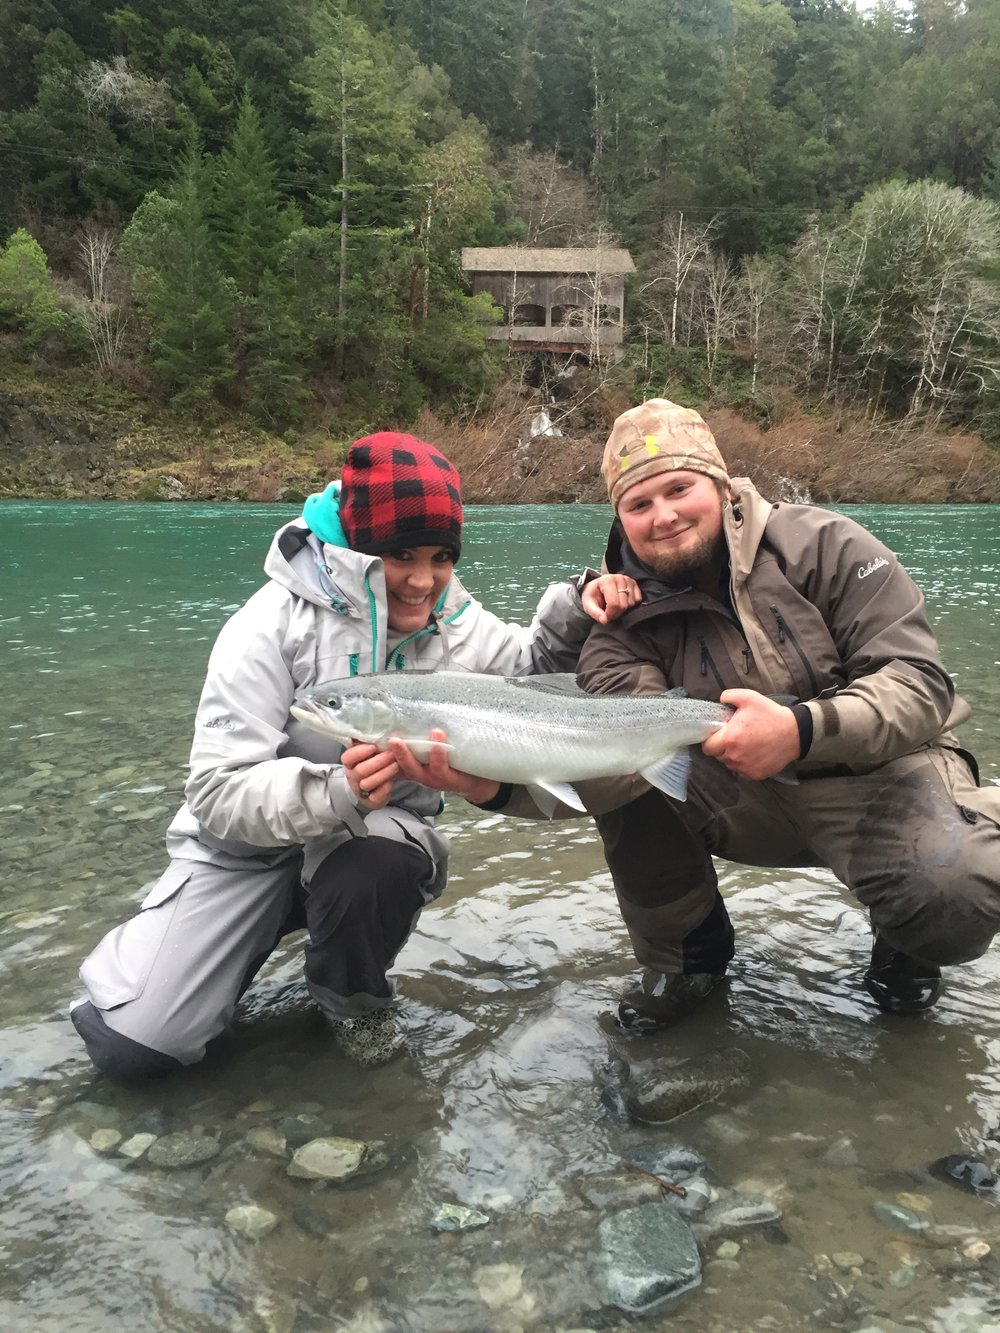 This picture of Dakota Deines and Kyla Melcher was taken by Sacramento River Fishing Guide Mike Rasmussen in early February, 2015 while on a guided steelhead fishing trip with Dakota Deines rowing for Kevin Brock.  Mike's Fishing Guide & Charter Service For Sacramento River Fishing targeting King Salmon, Sockeye Salmon, Striped Bass, Sturgeon, Shad And Trout the best Sacramento River Fishing guide and Sacramento River Charter on Sac River